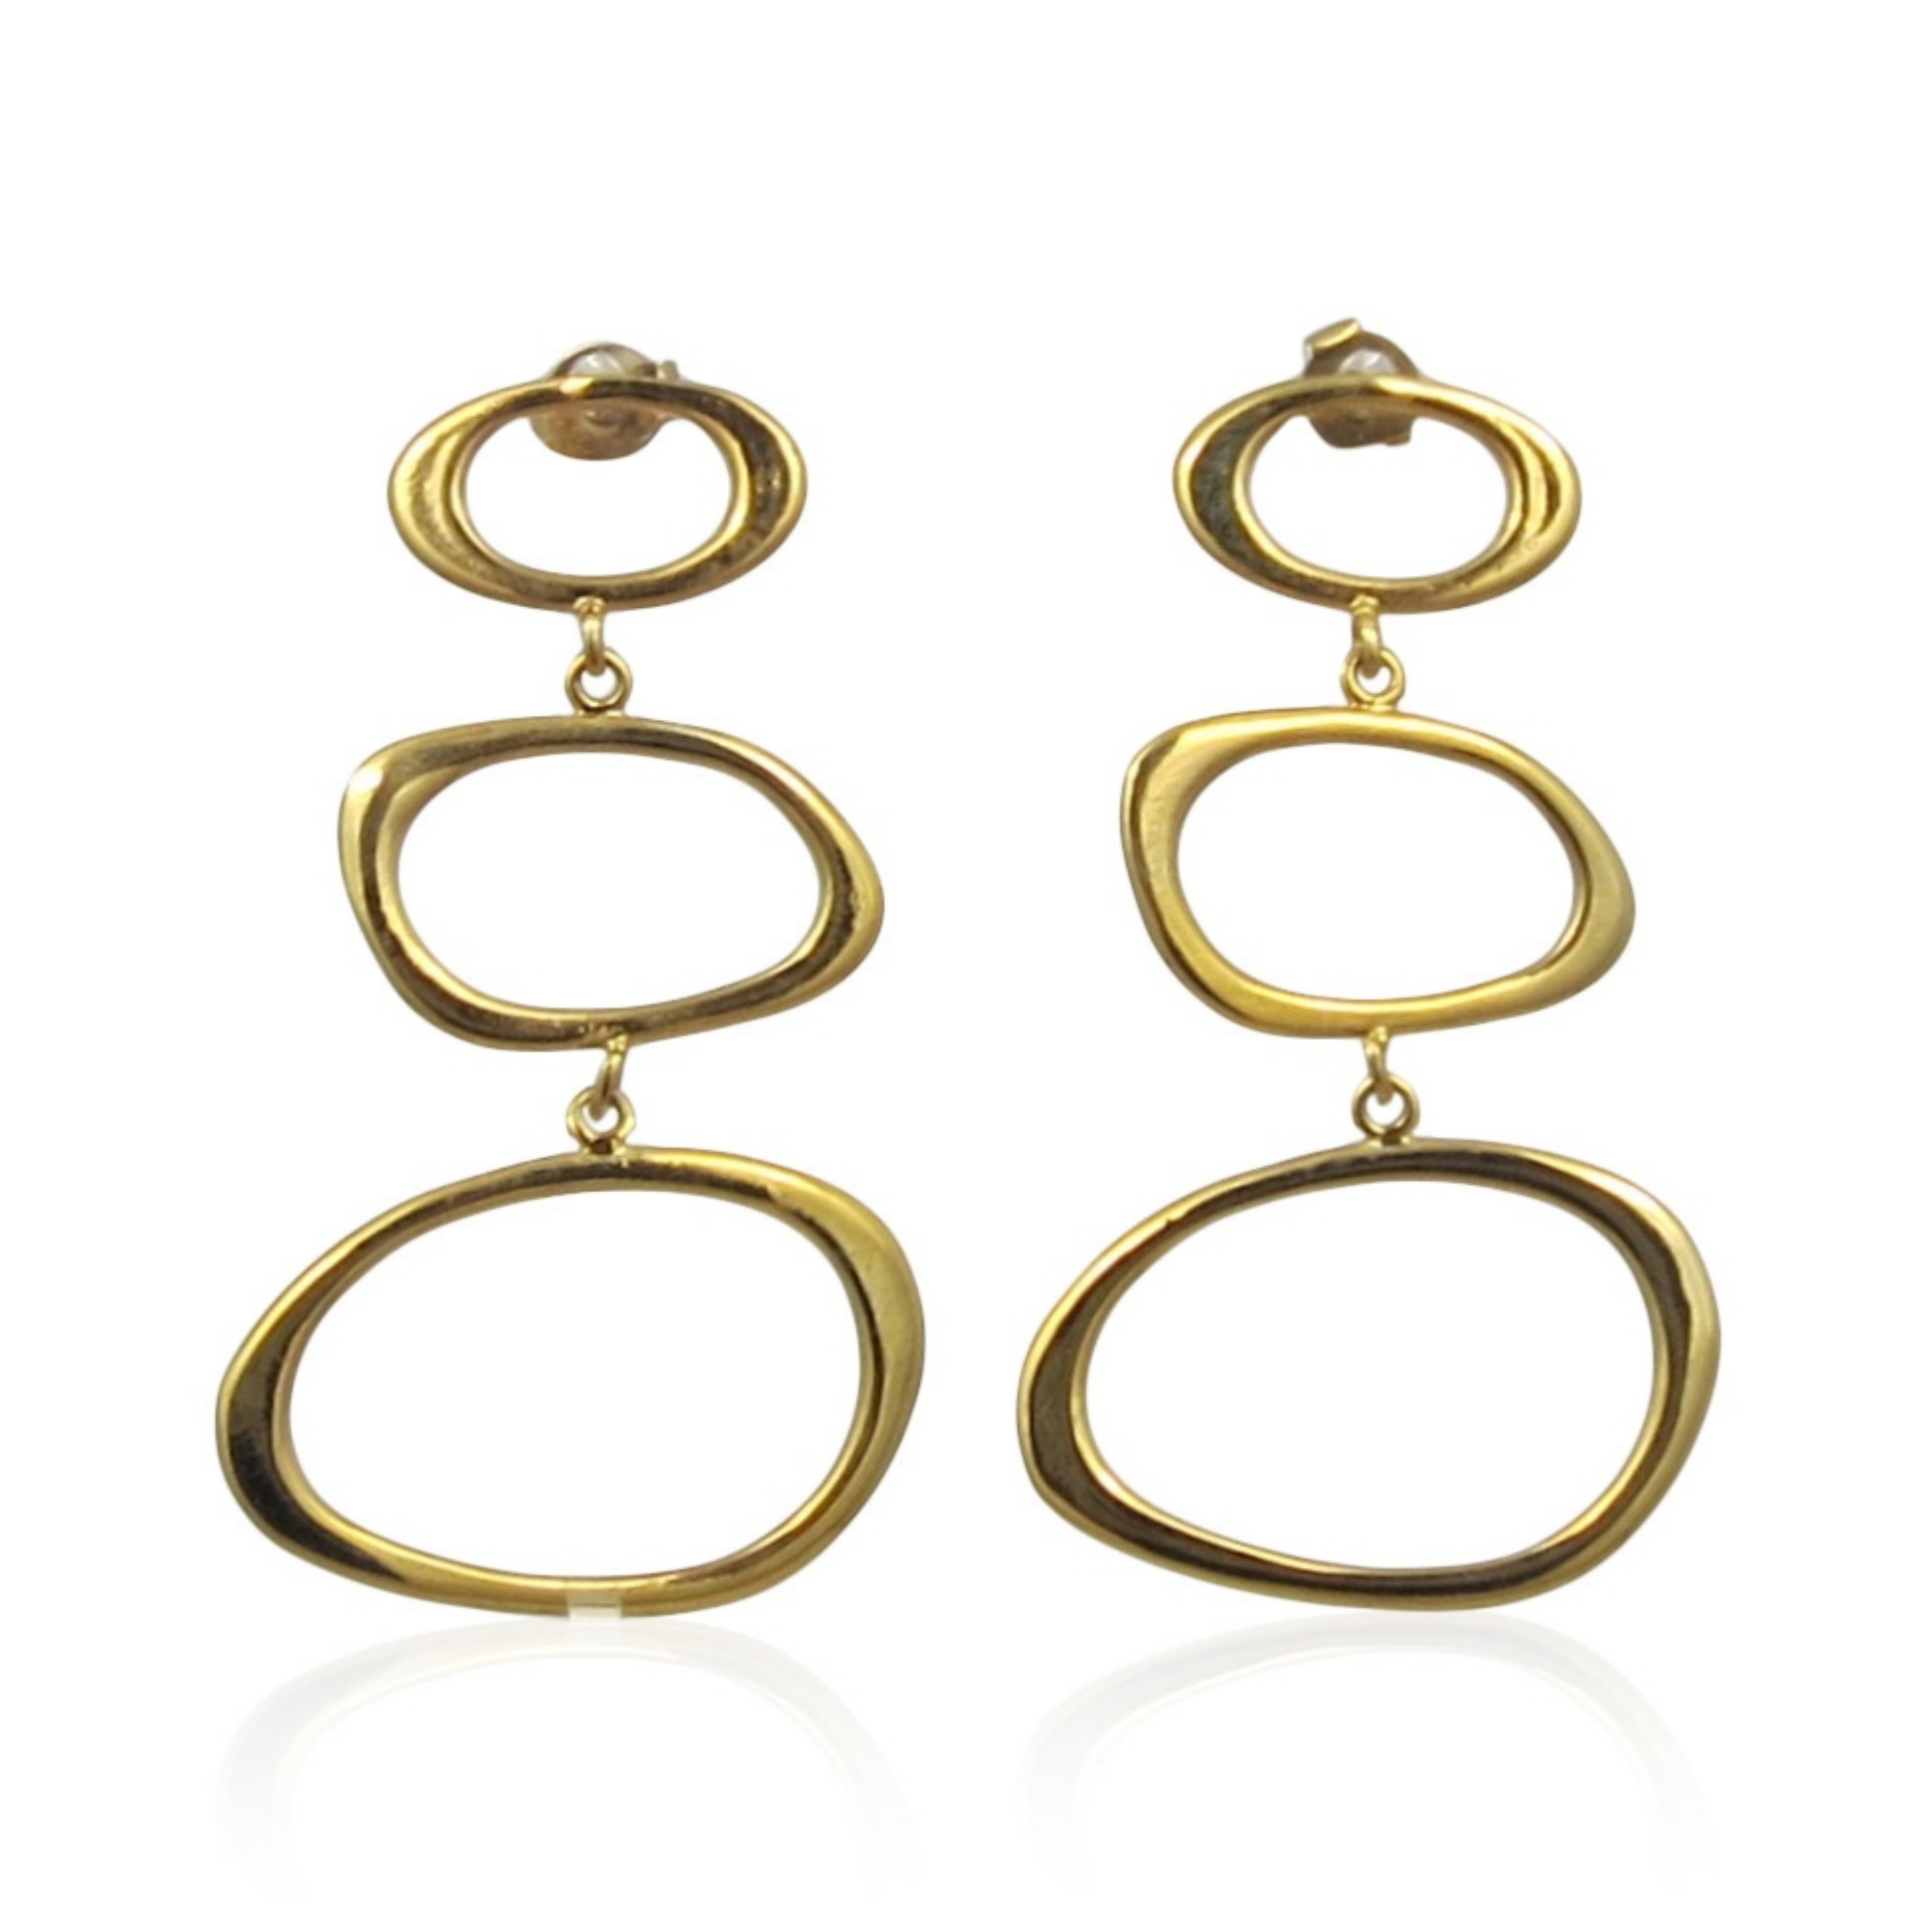 Lara Design - Earrings Gold Shapes A